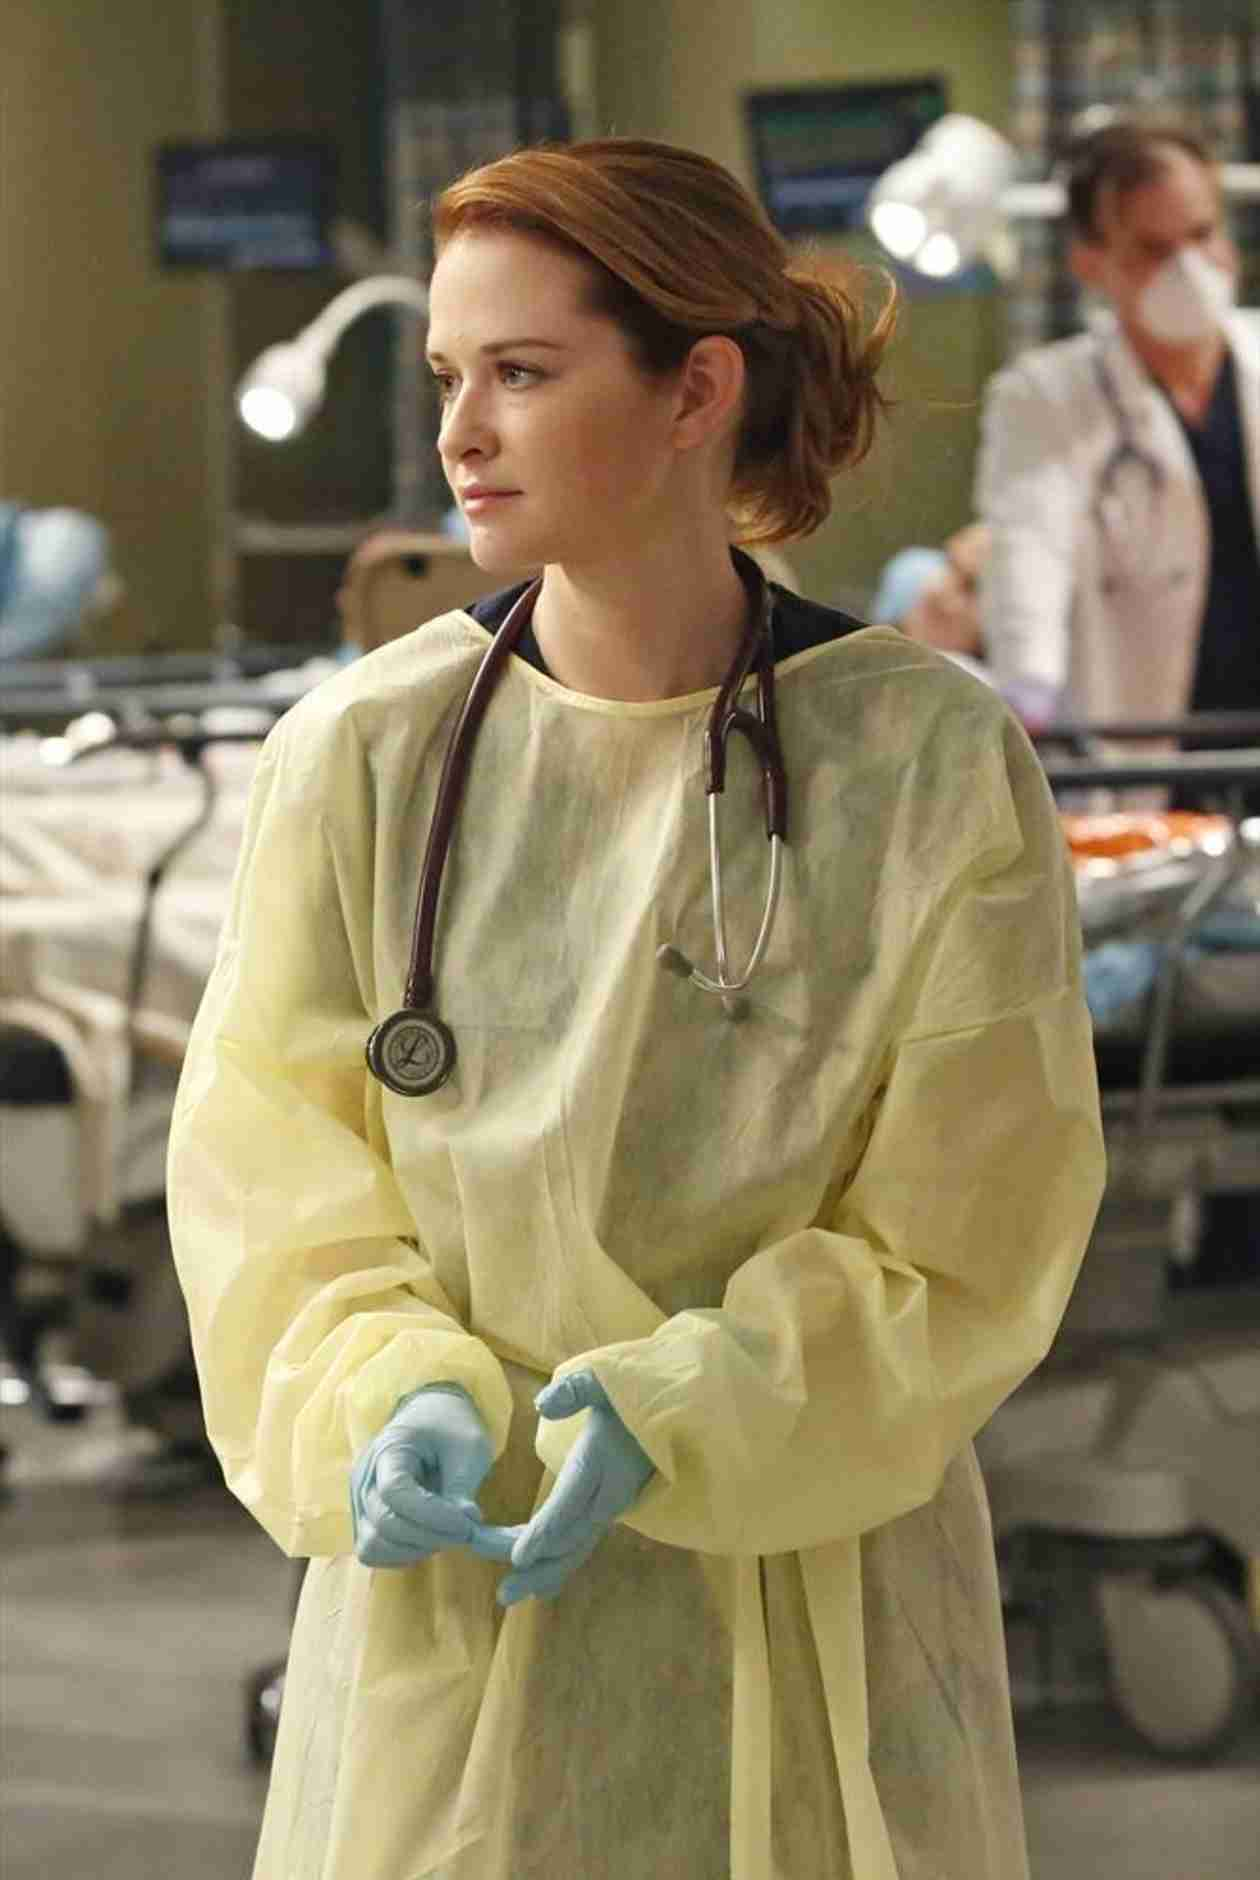 Grey's Anatomy Season 10 Finale Spoilers: 6 Things We Learn From the Sneak Peeks